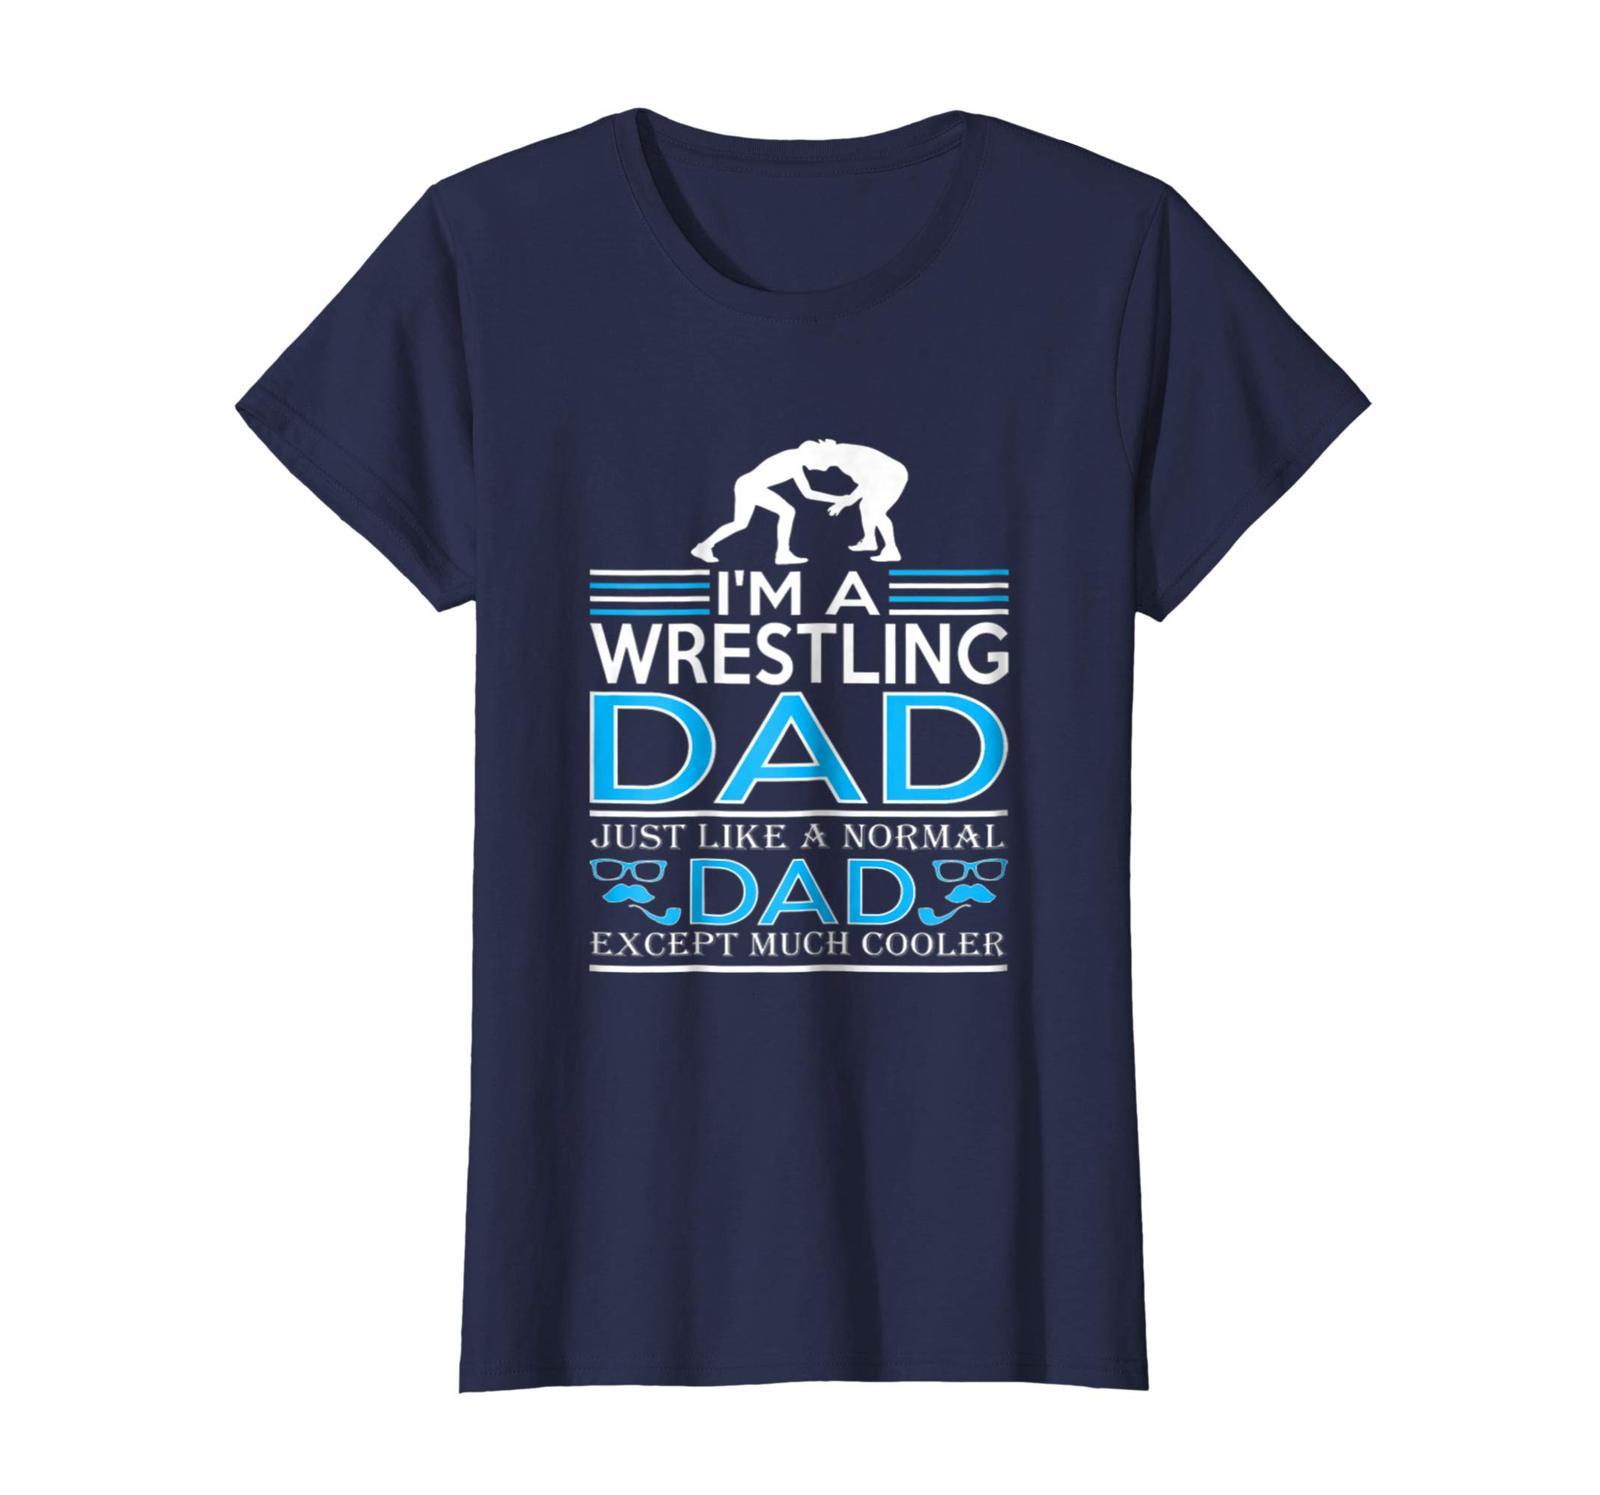 Dad Shirts - Im Wrestling Dad Like Normal Dad Except Cooler Shirt Wowen